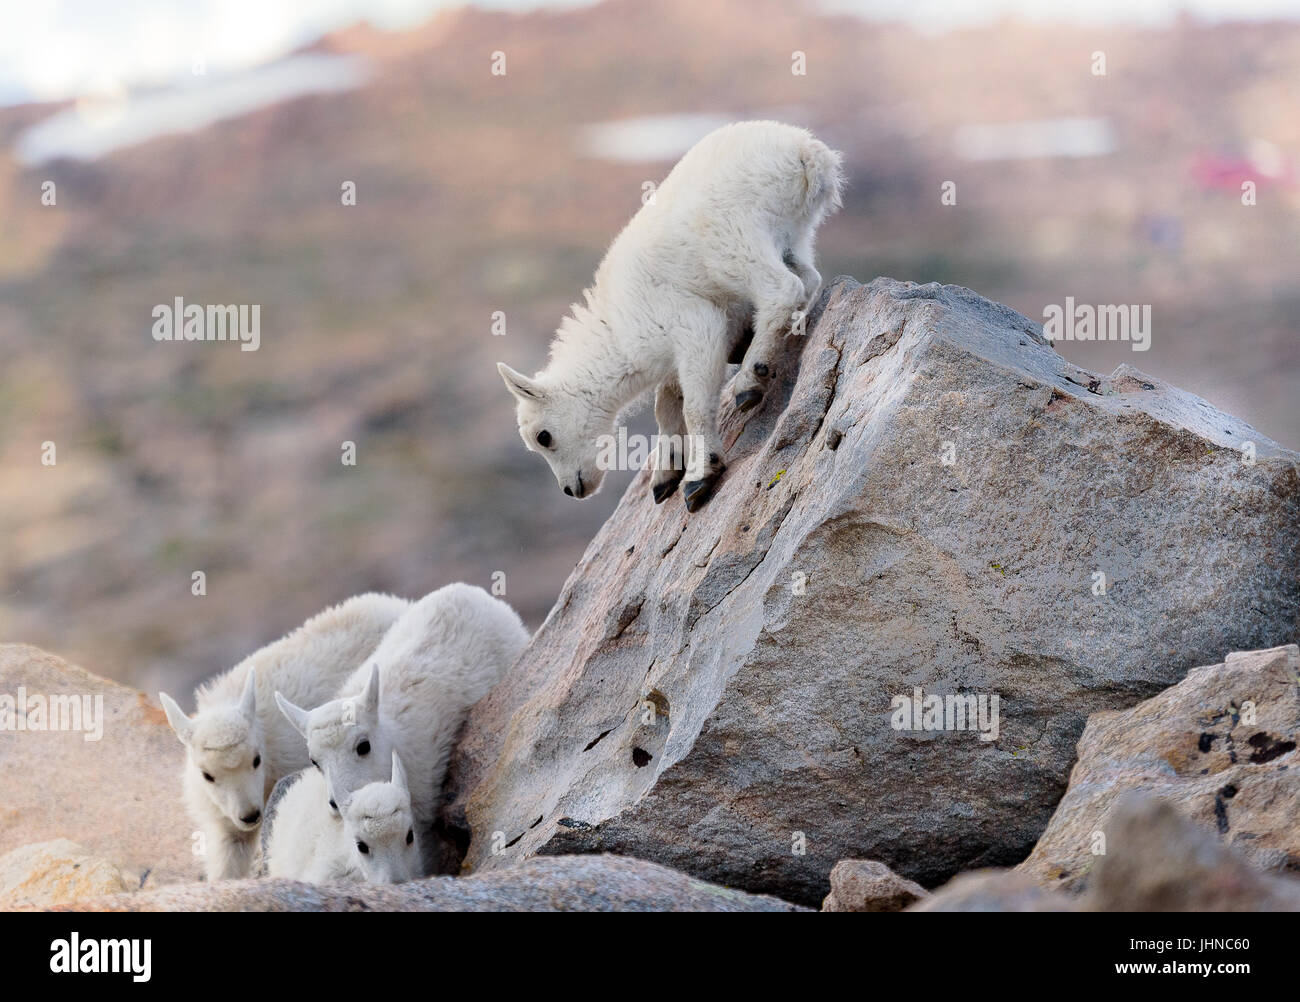 'Look out below!' Baby mountain goat try out their new rock climbing skills. - Stock Image